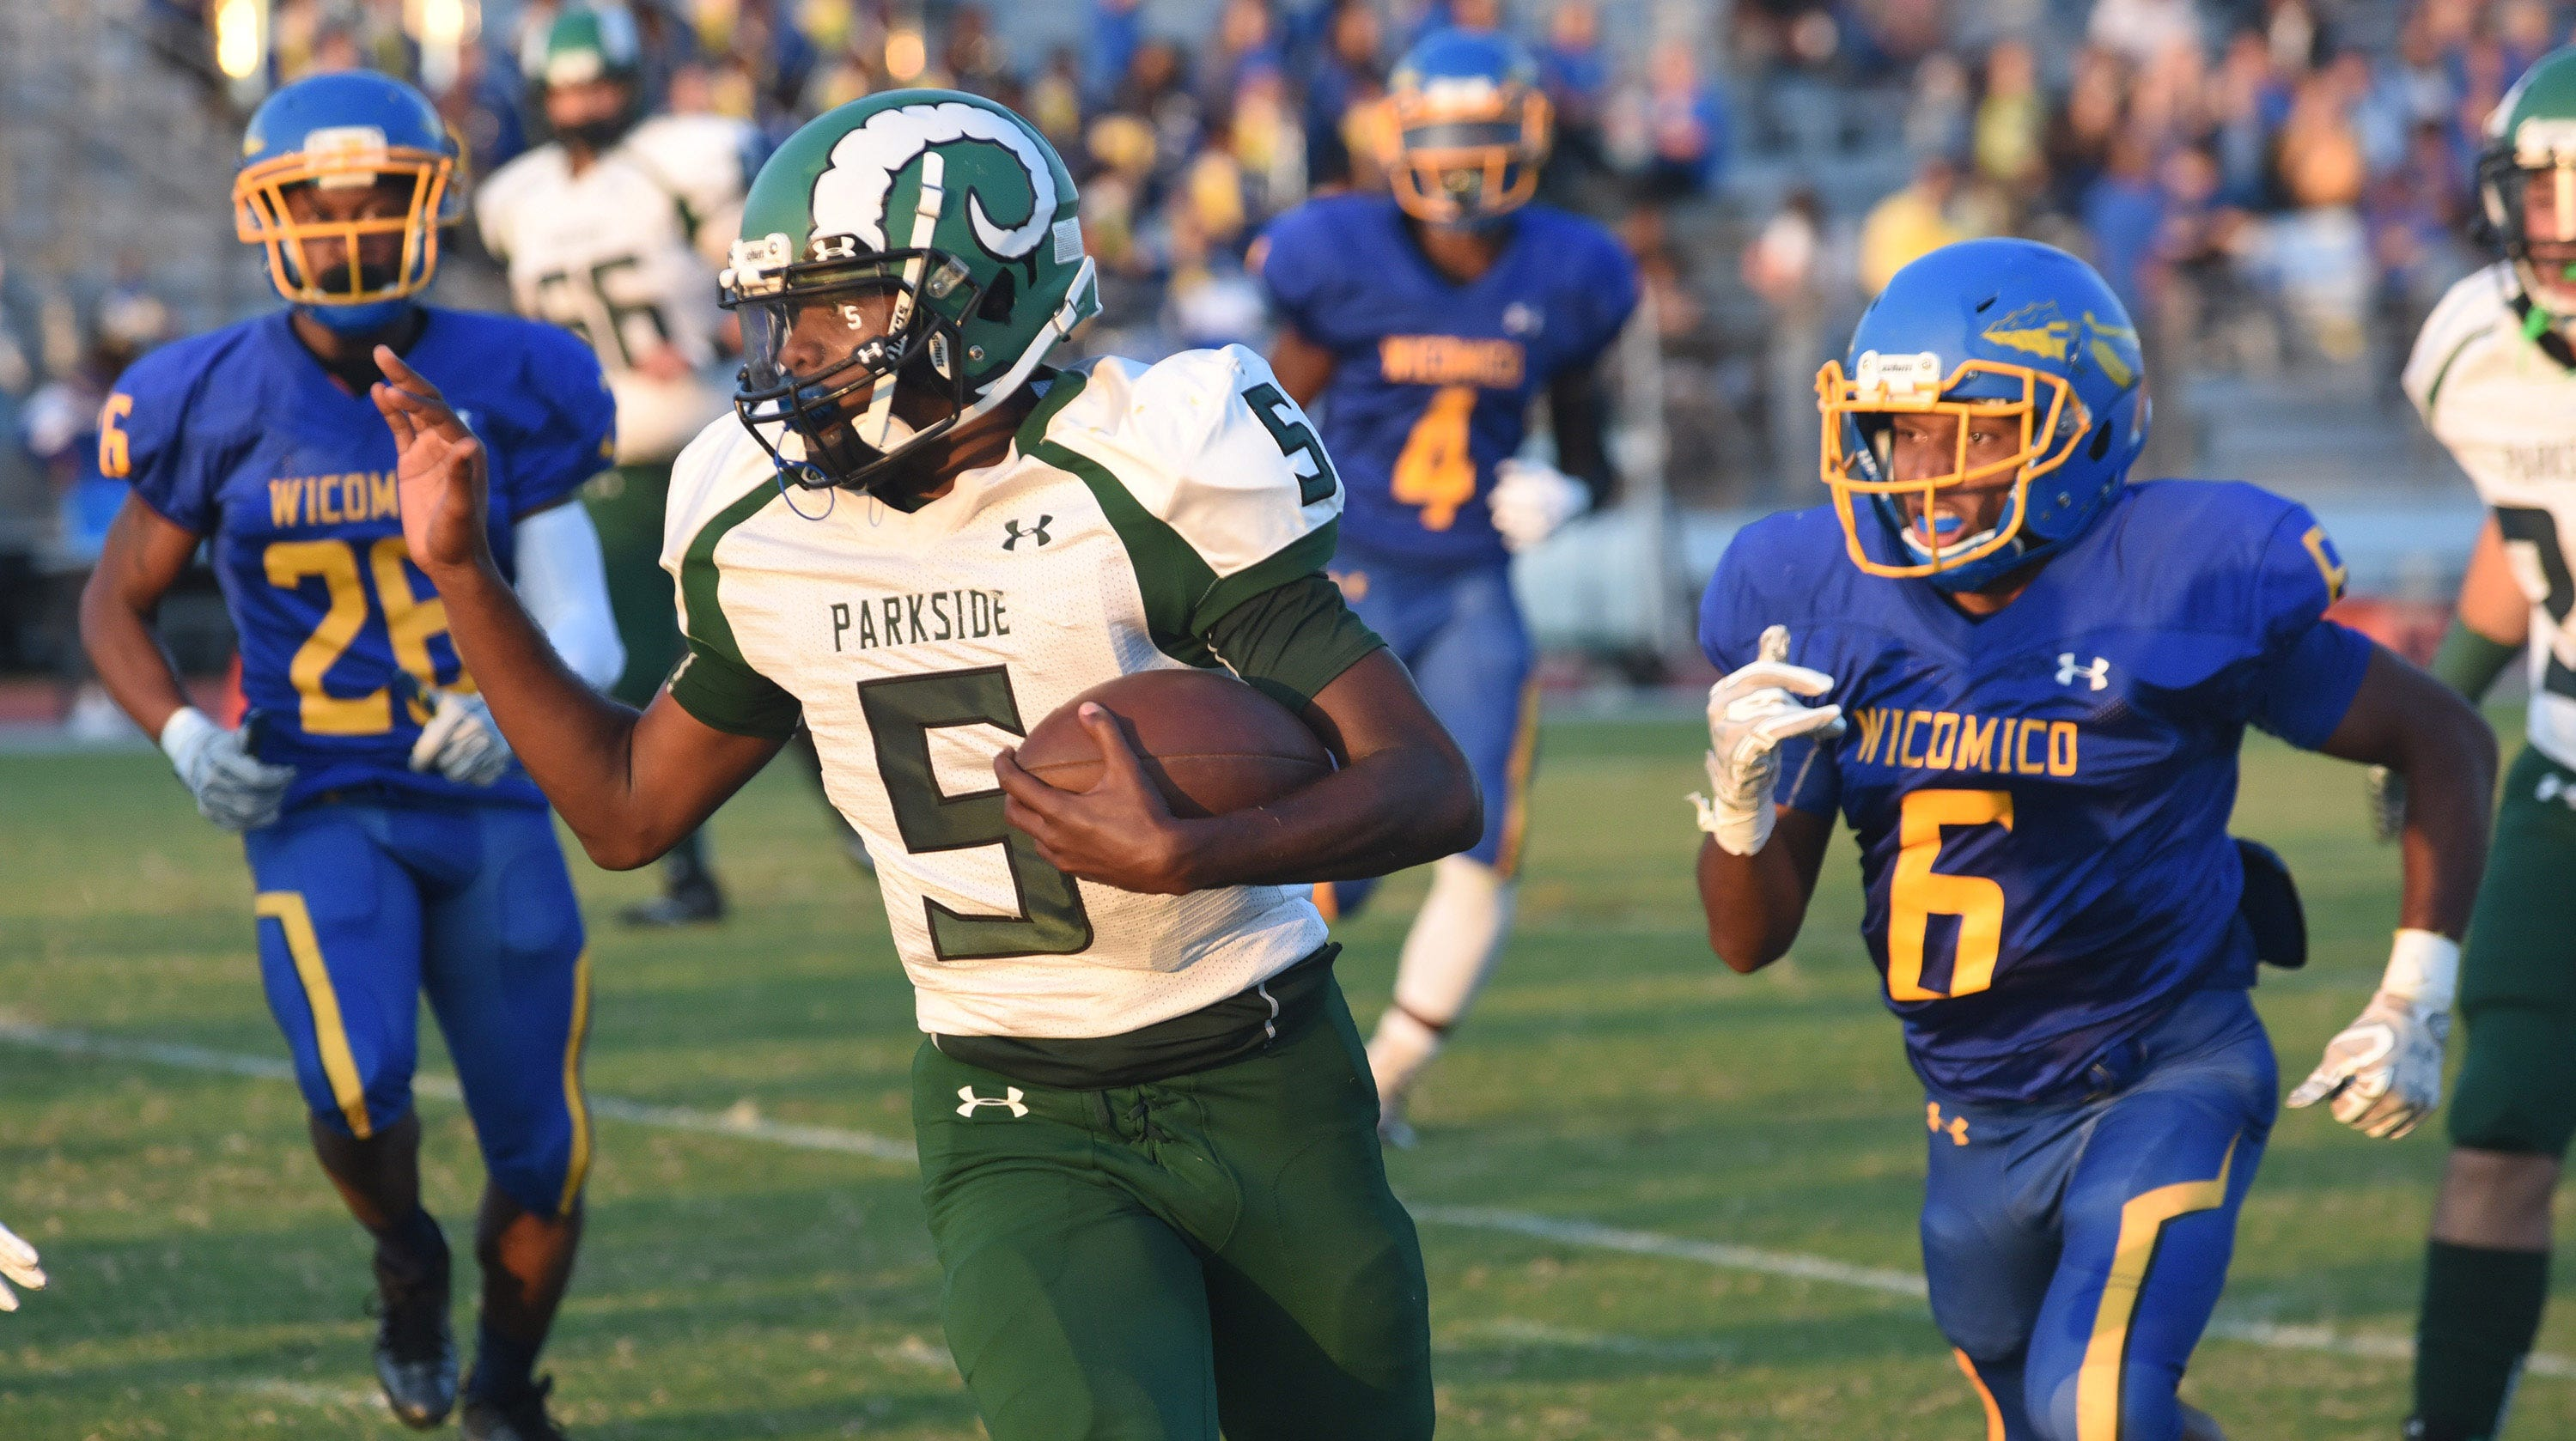 Parkside's Marcus Yarns runs the ball during first half action at the Parkside/Wicomico High School Football game Friday, Sept. 21, 2018 at County Stadium. (Photo by Todd Dudek for The Daily Times)